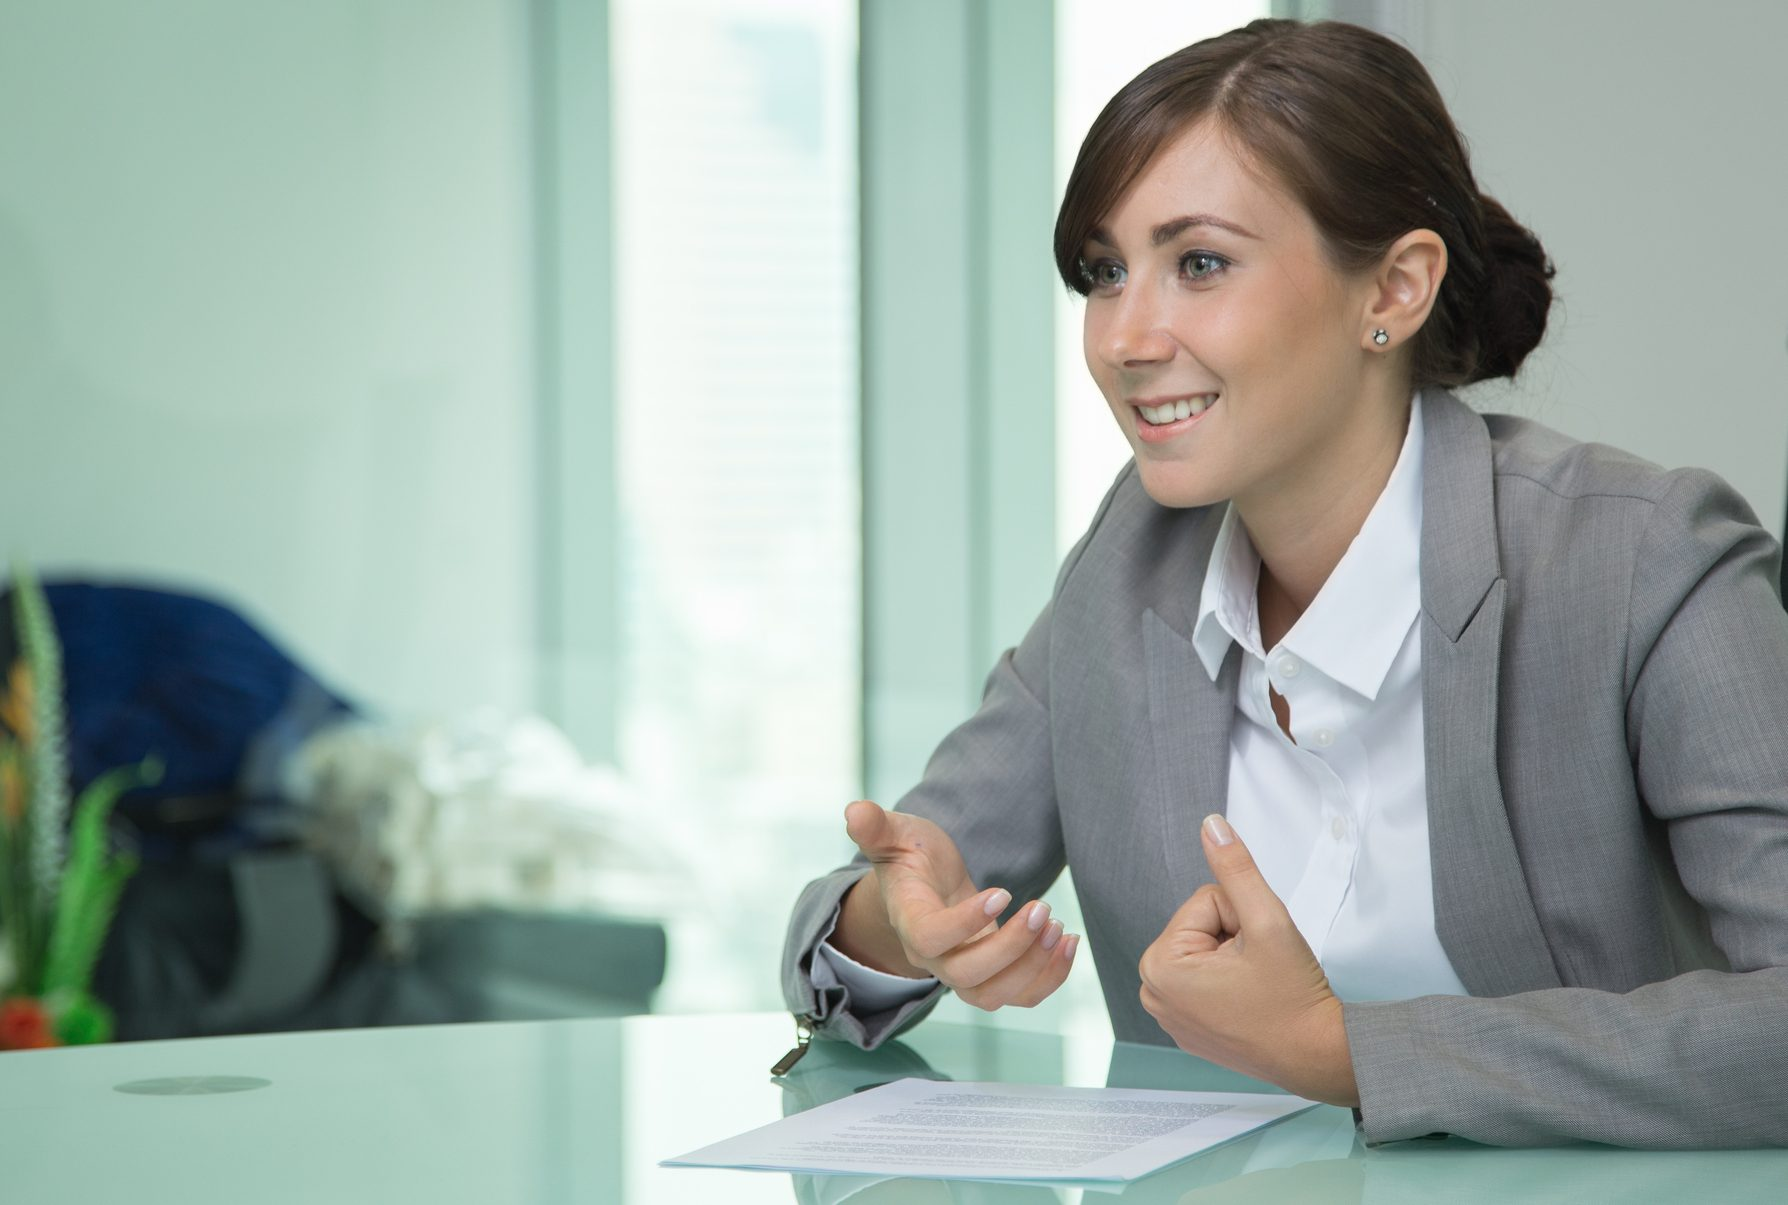 5 signs you just interviewed a genuinely interested